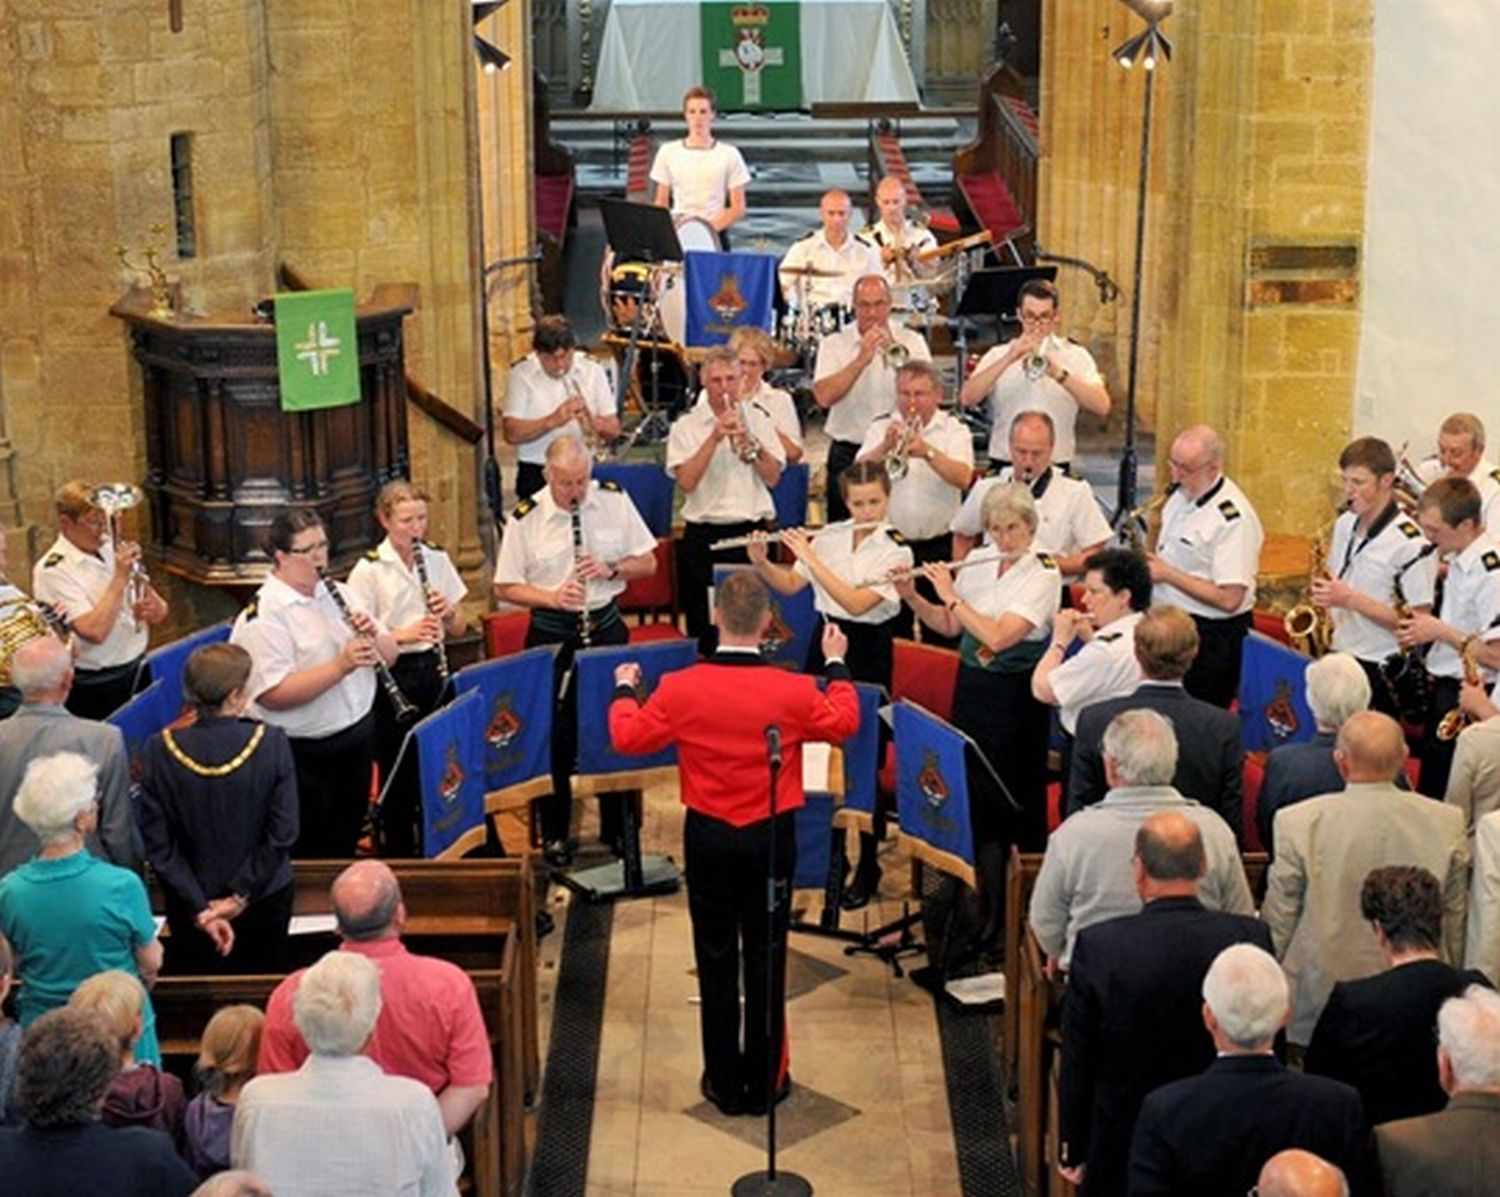 HMS Volunteer Royal Naval Band sound at a past concert.